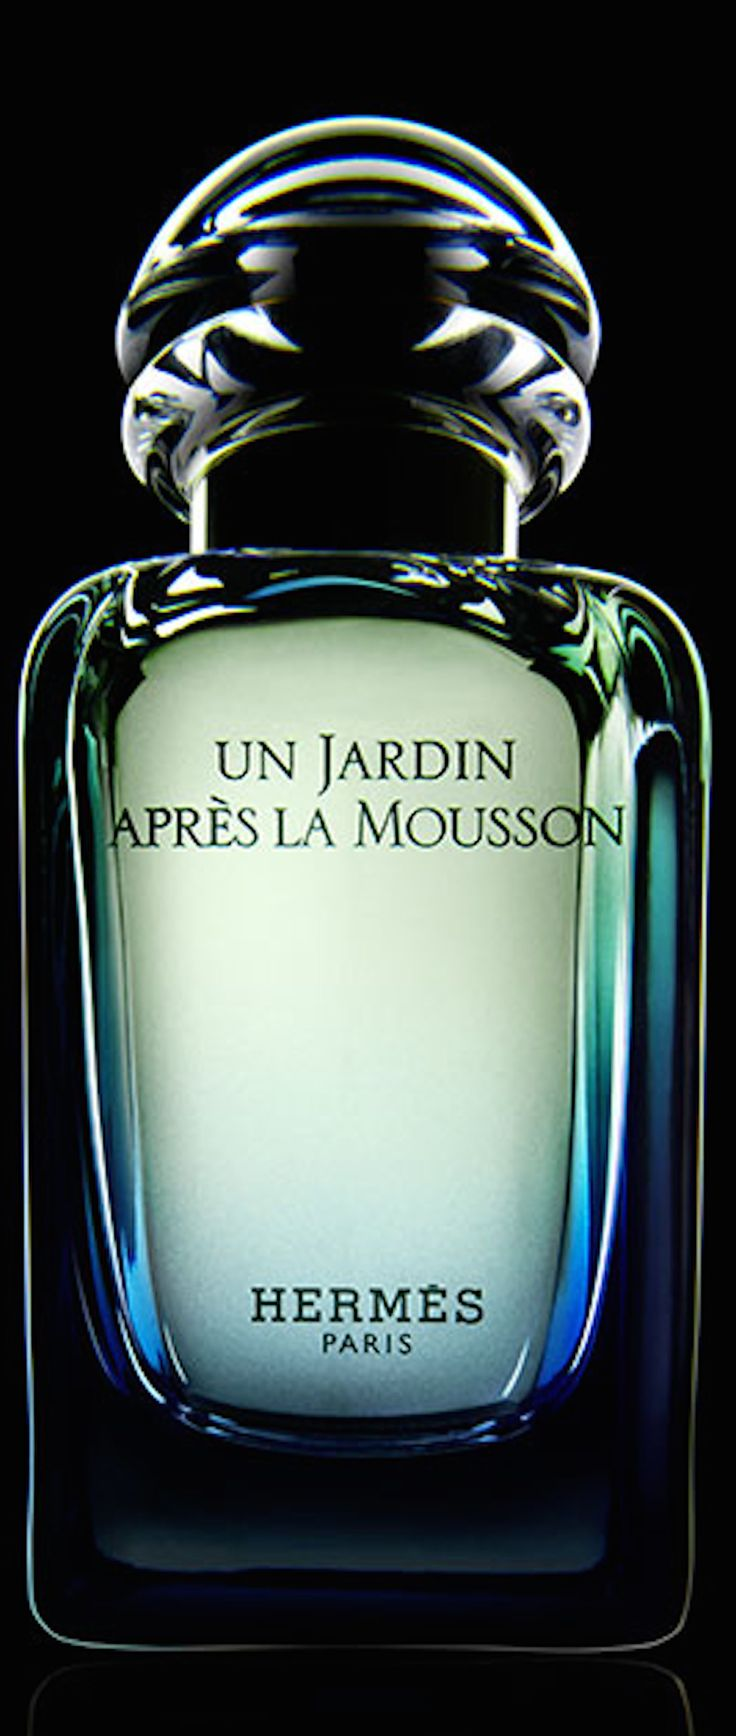 Un Jardin Après La Mousson by Hermes. Coriander, ginger, pepper, ginger flower, cardamom.